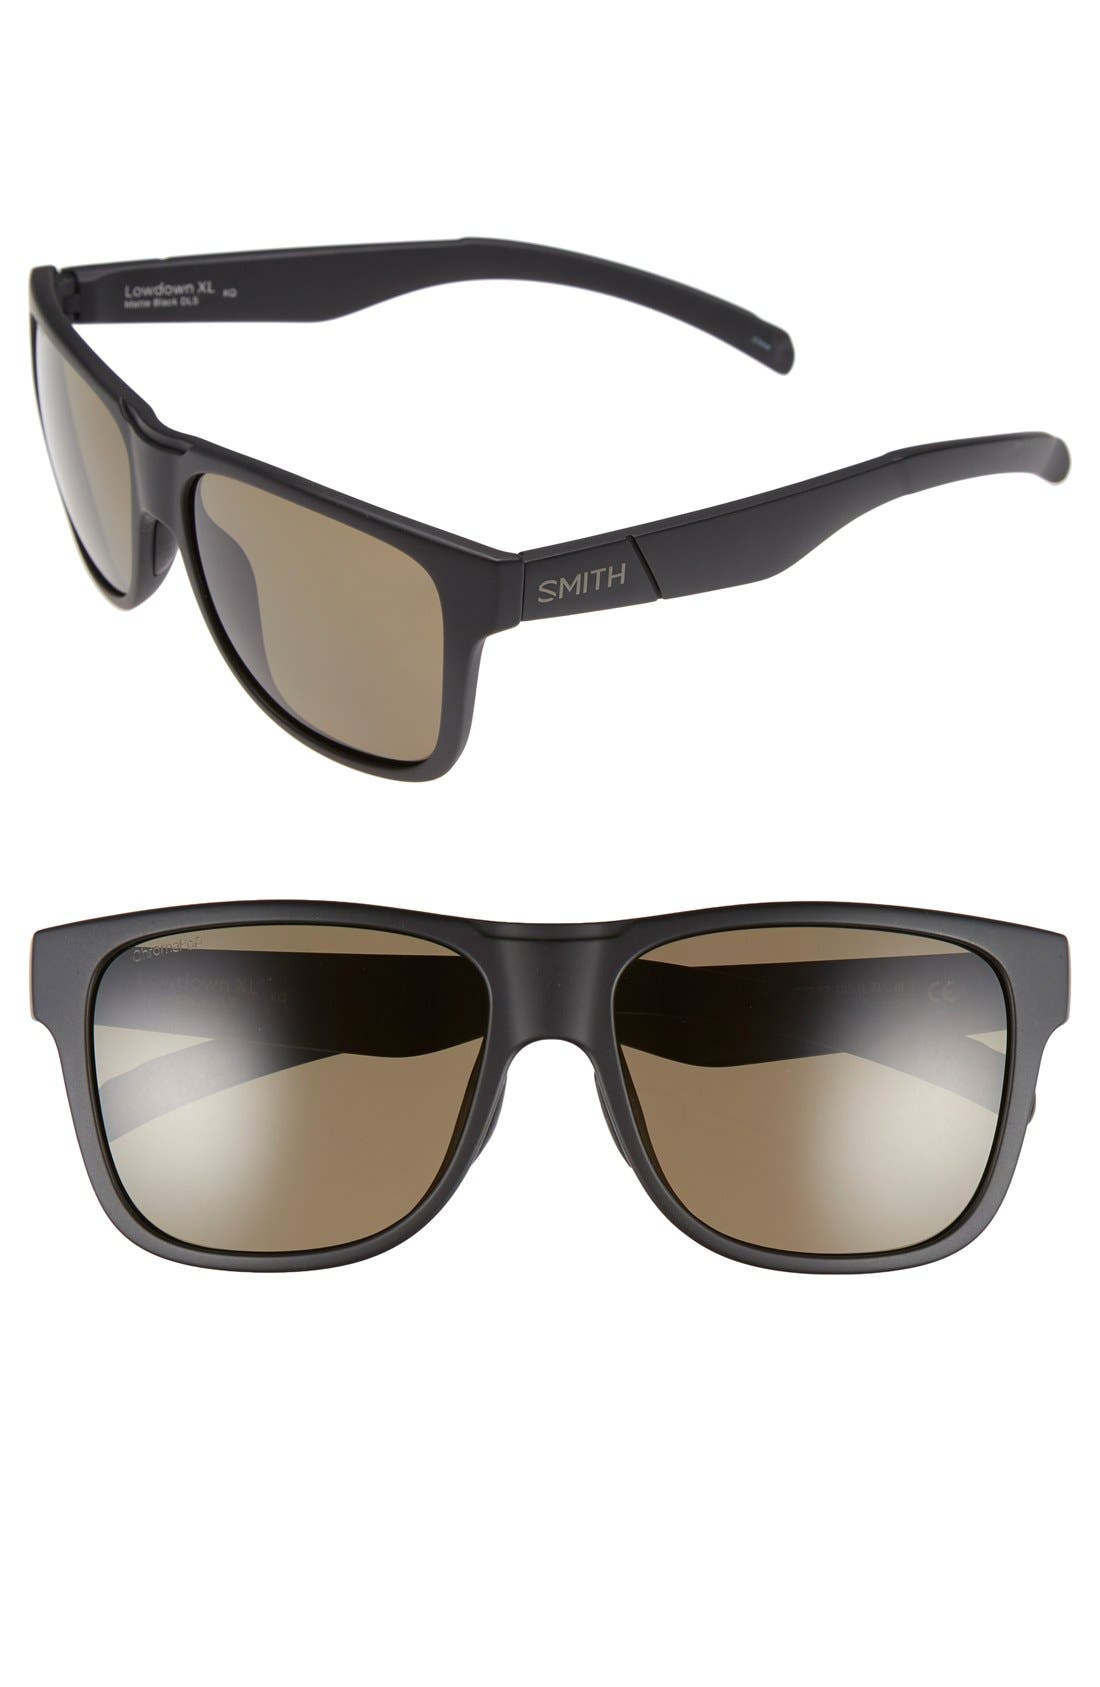 'Lowdown XL' 58mm Polarized Sunglasses,                         Main,                         color, 001